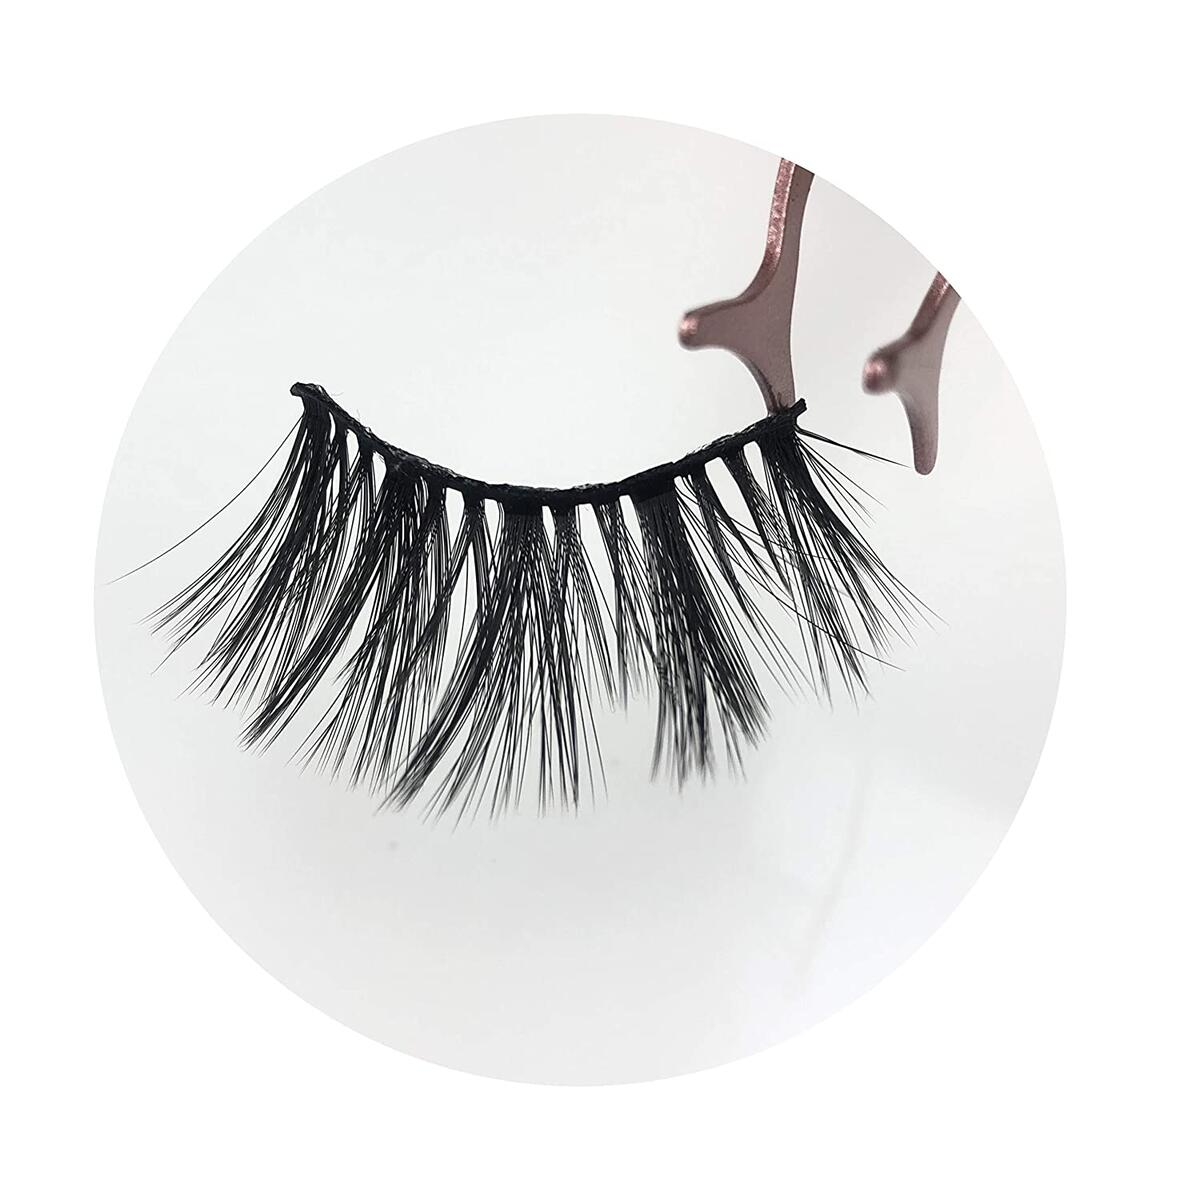 8 Pairs 20mm Natural Look Reusable Short Volume Fluffy Eyelashes Wispy Lashes